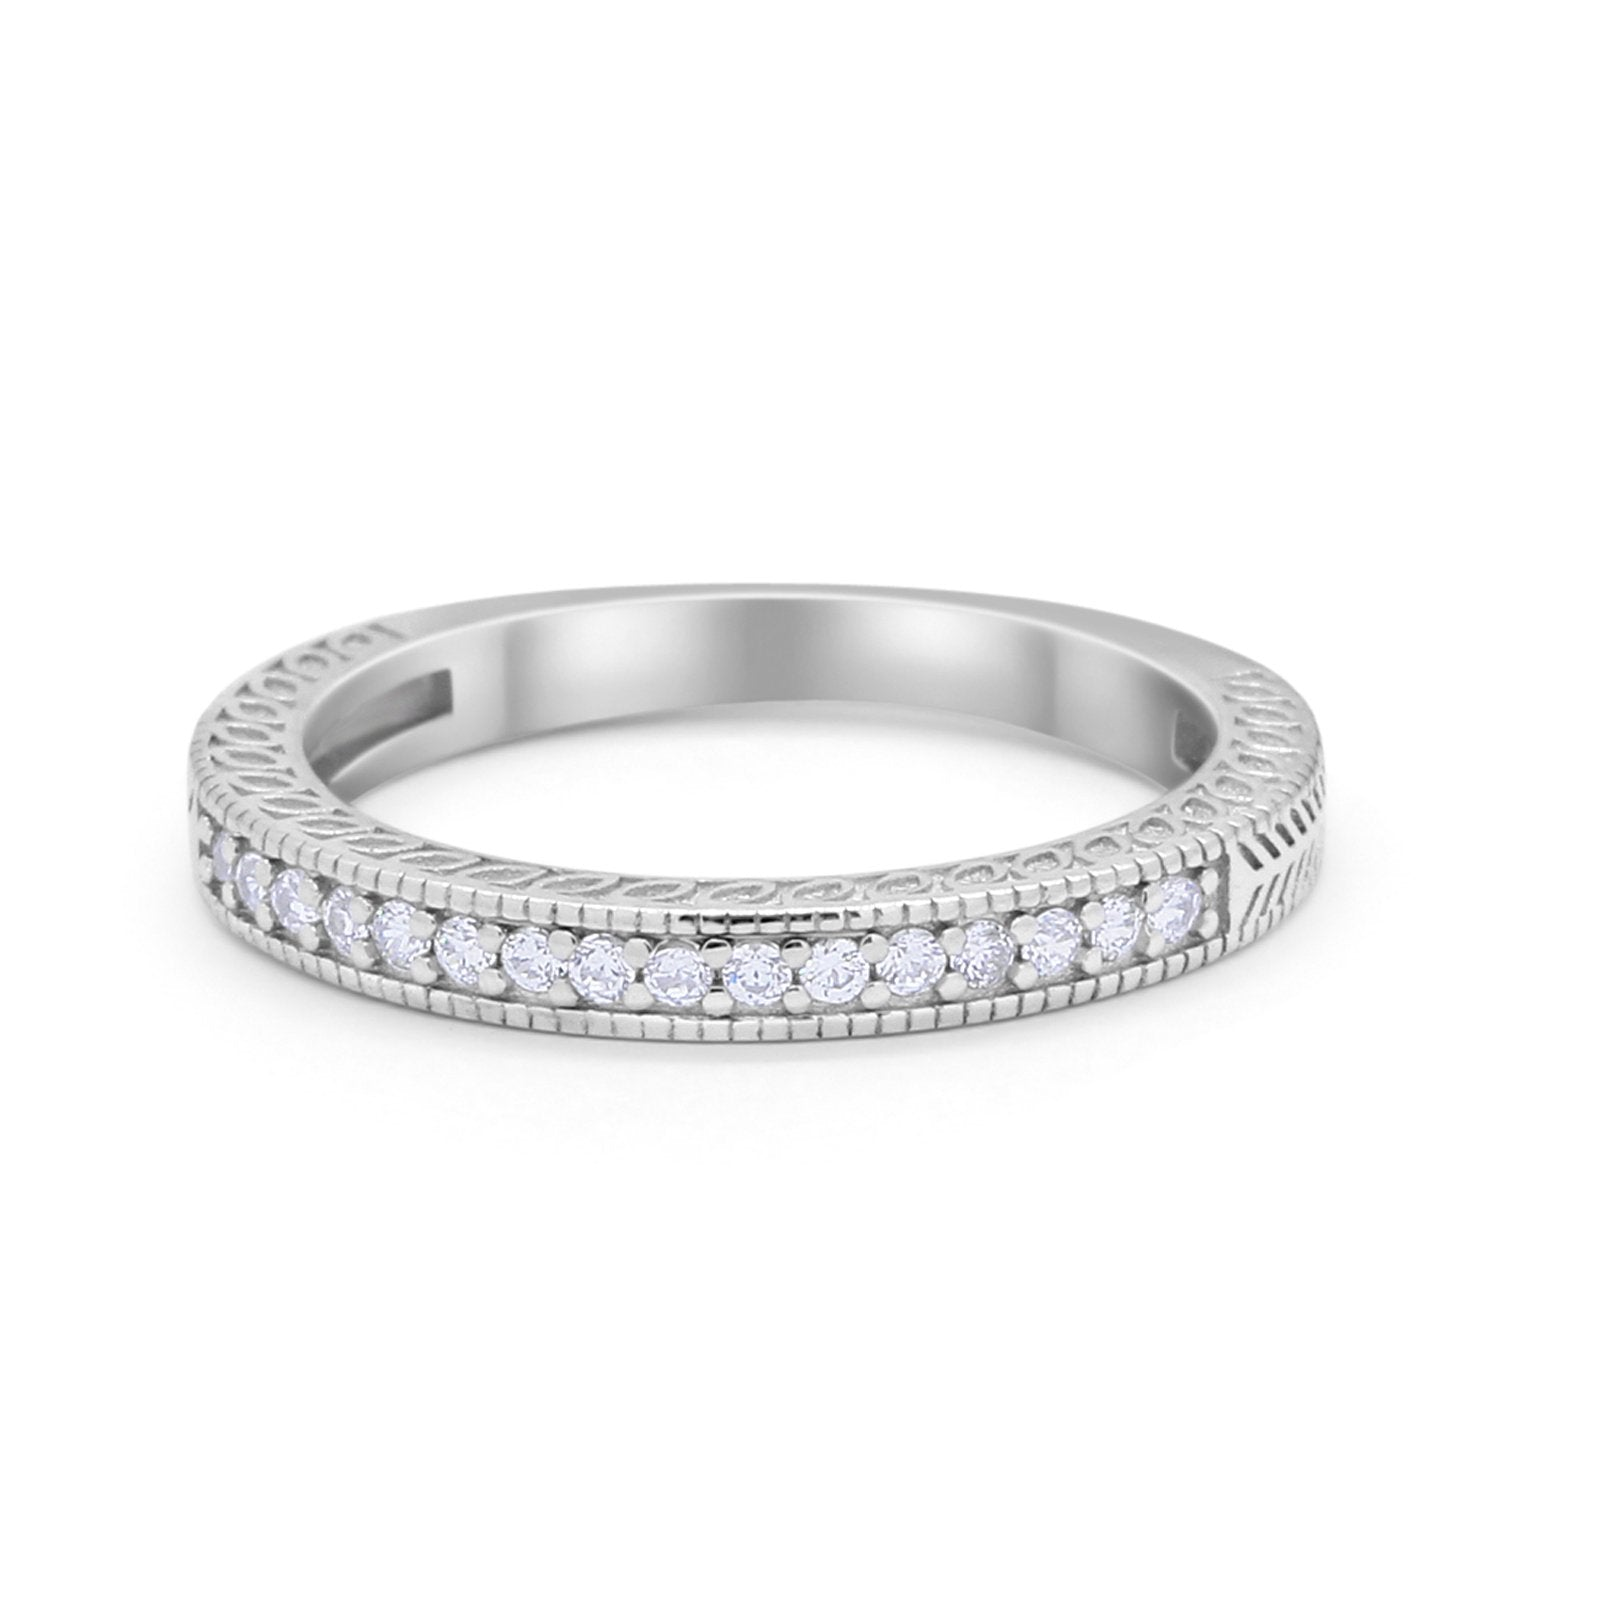 Half Eternity Wedding Band Ring Round Simulated Cubic Zirconia 925 Sterling Silver